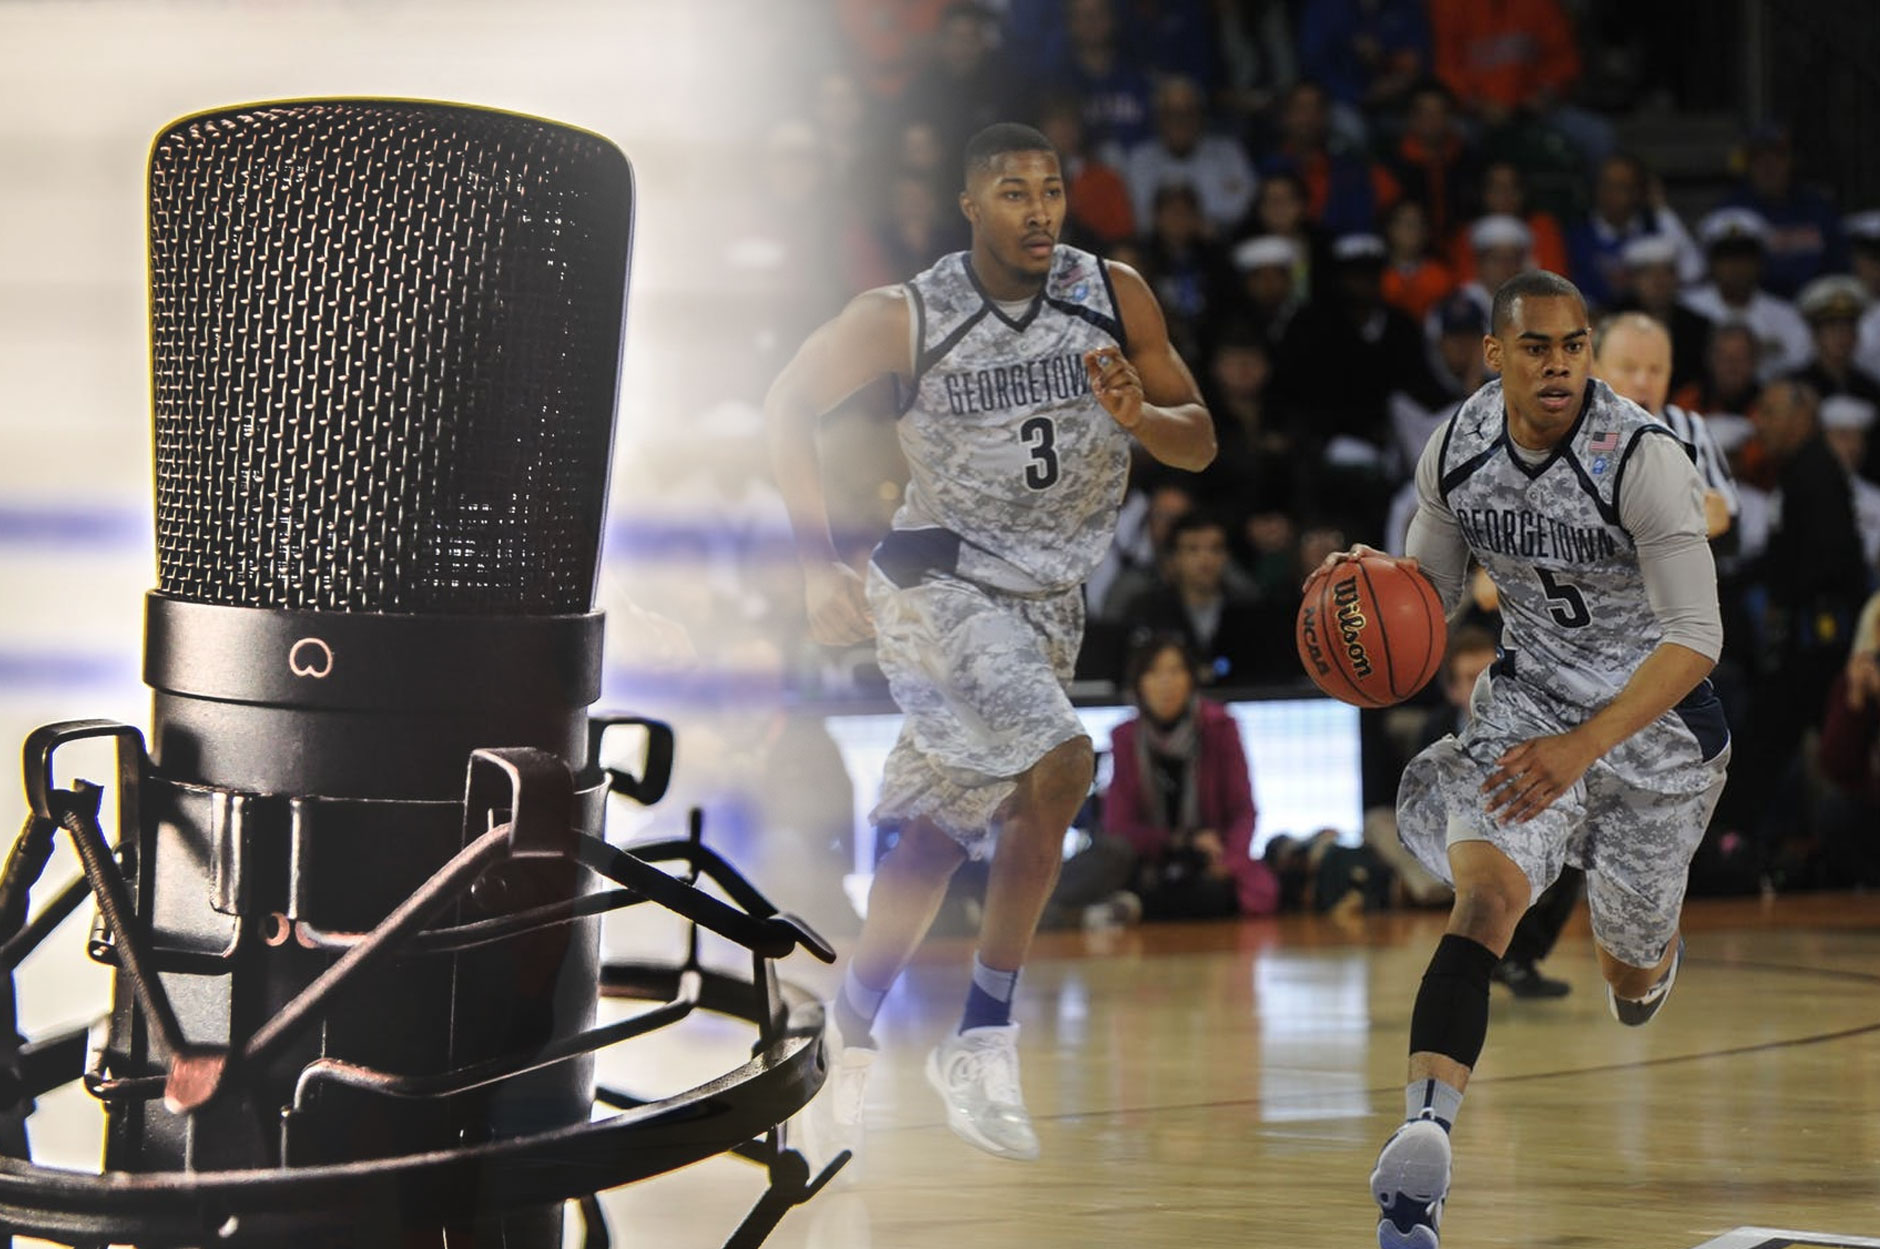 Top 2 Sports Betting Podcasts to Learn From - Top 2 Sports Betting Podcasts to Learn From